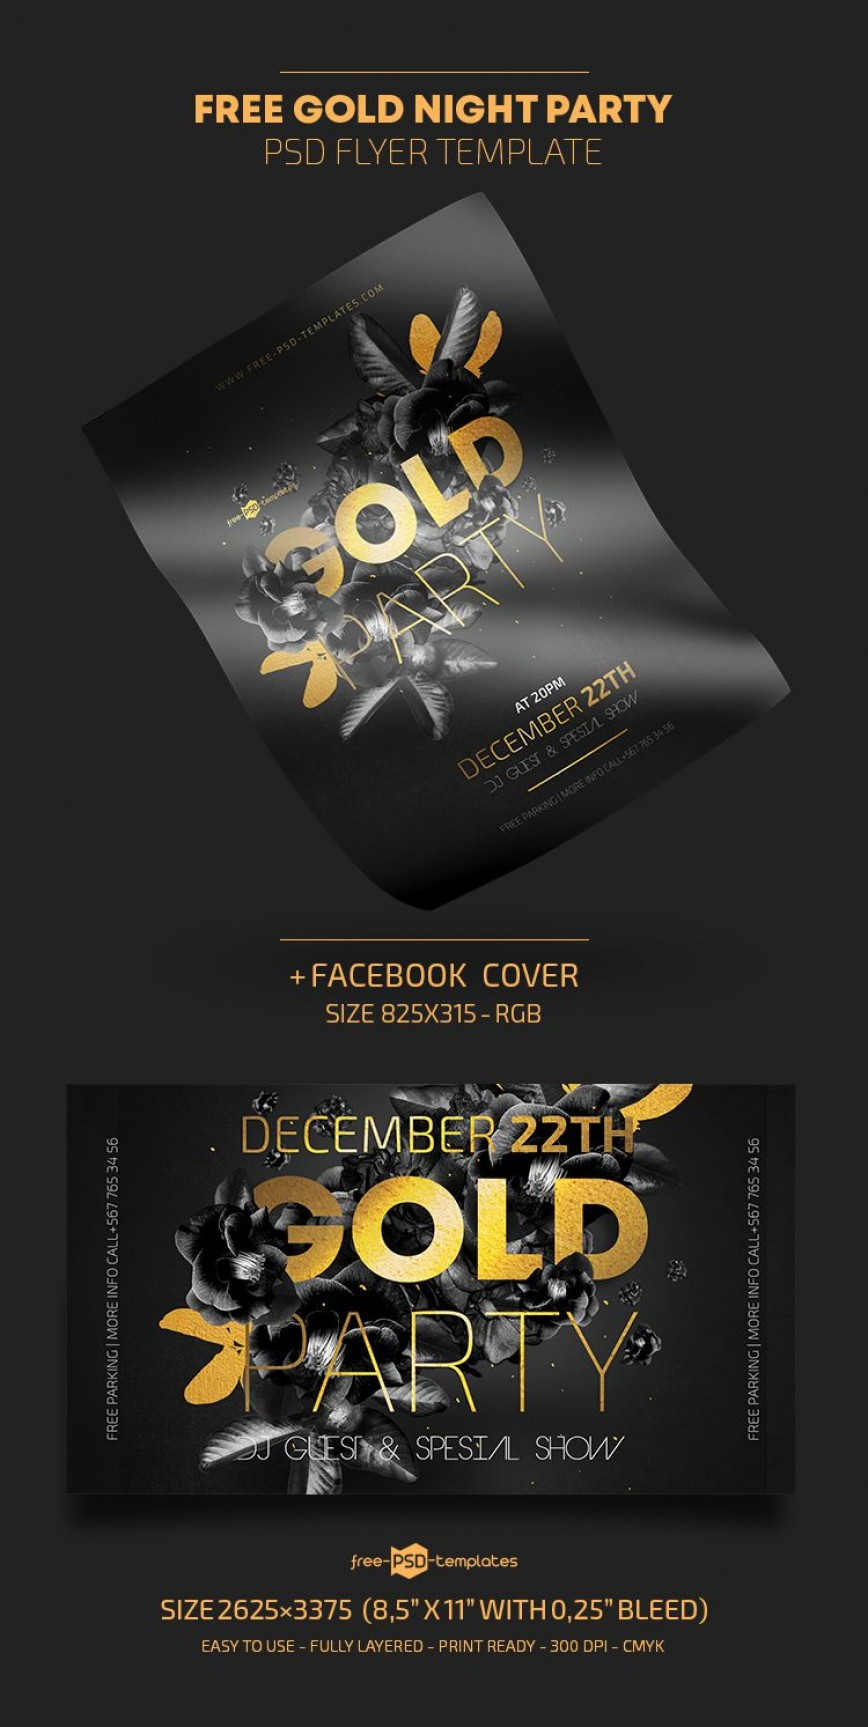 009 Marvelou Free Party Flyer Template For Photoshop Picture  Pool Psd Download868